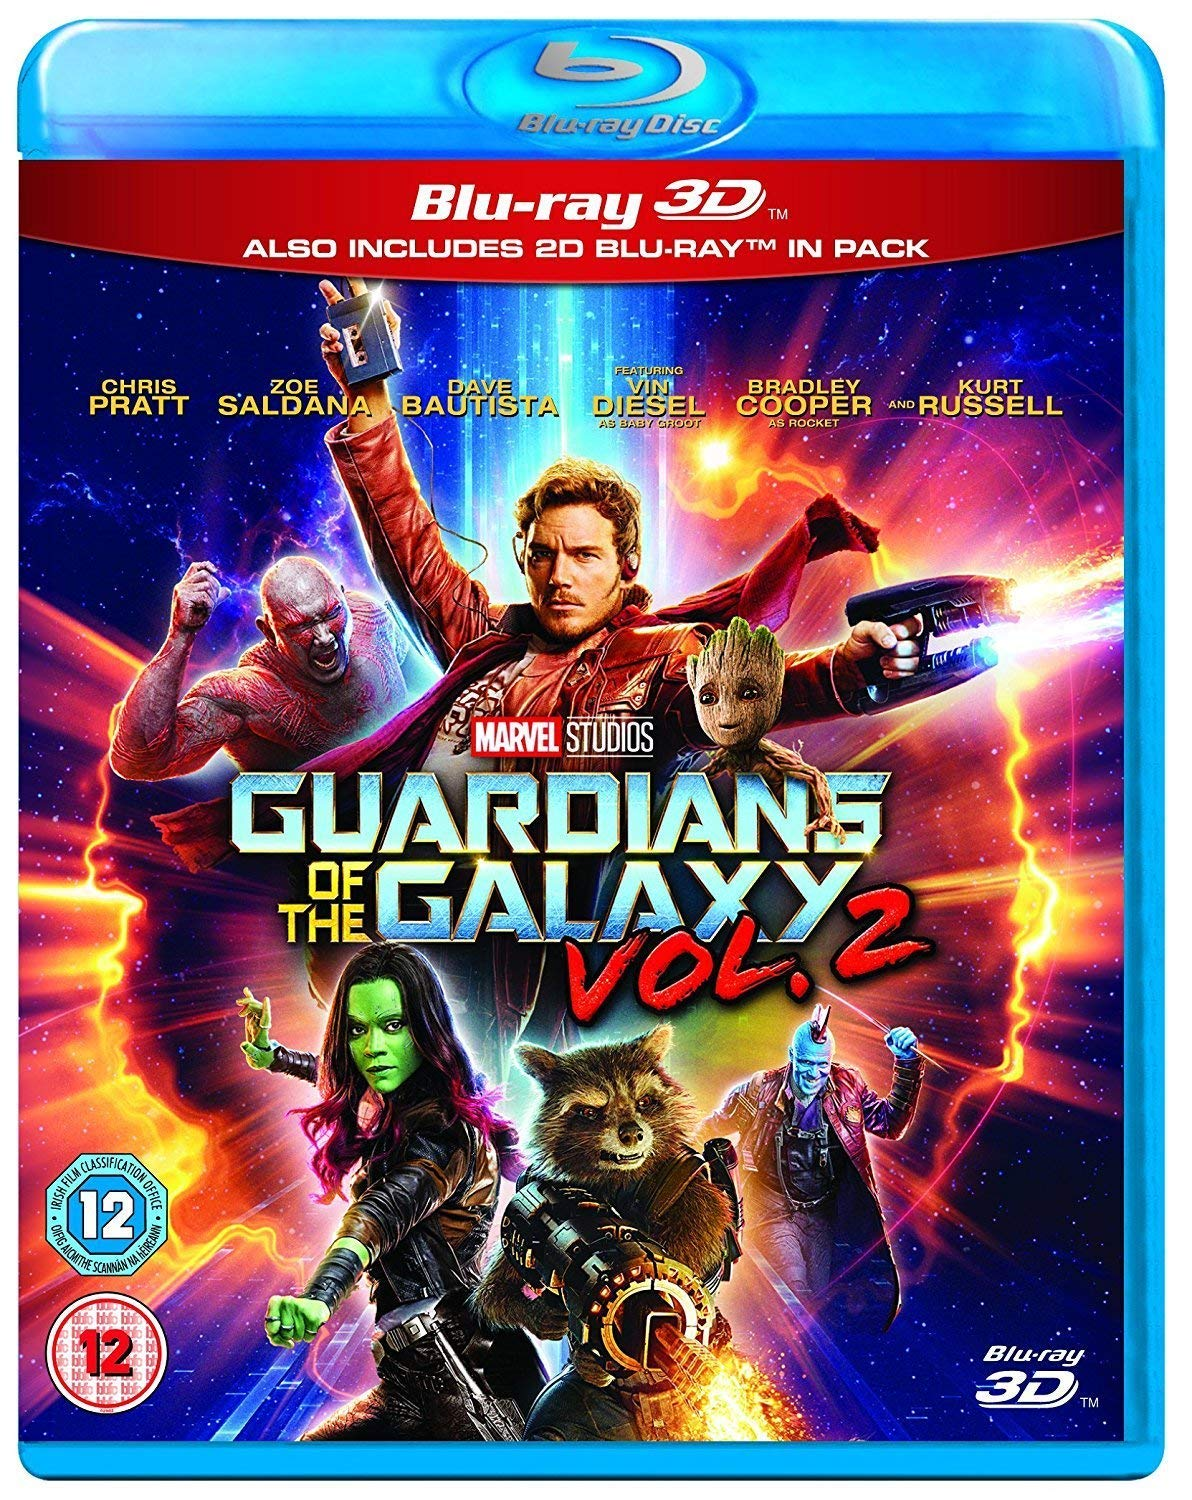 Guardians of the Galaxy Vol. 2 [Blu-ray 3D + Blu-ray] Chris Pratt Zoe Saldana Dave Bautista Vin Diesel